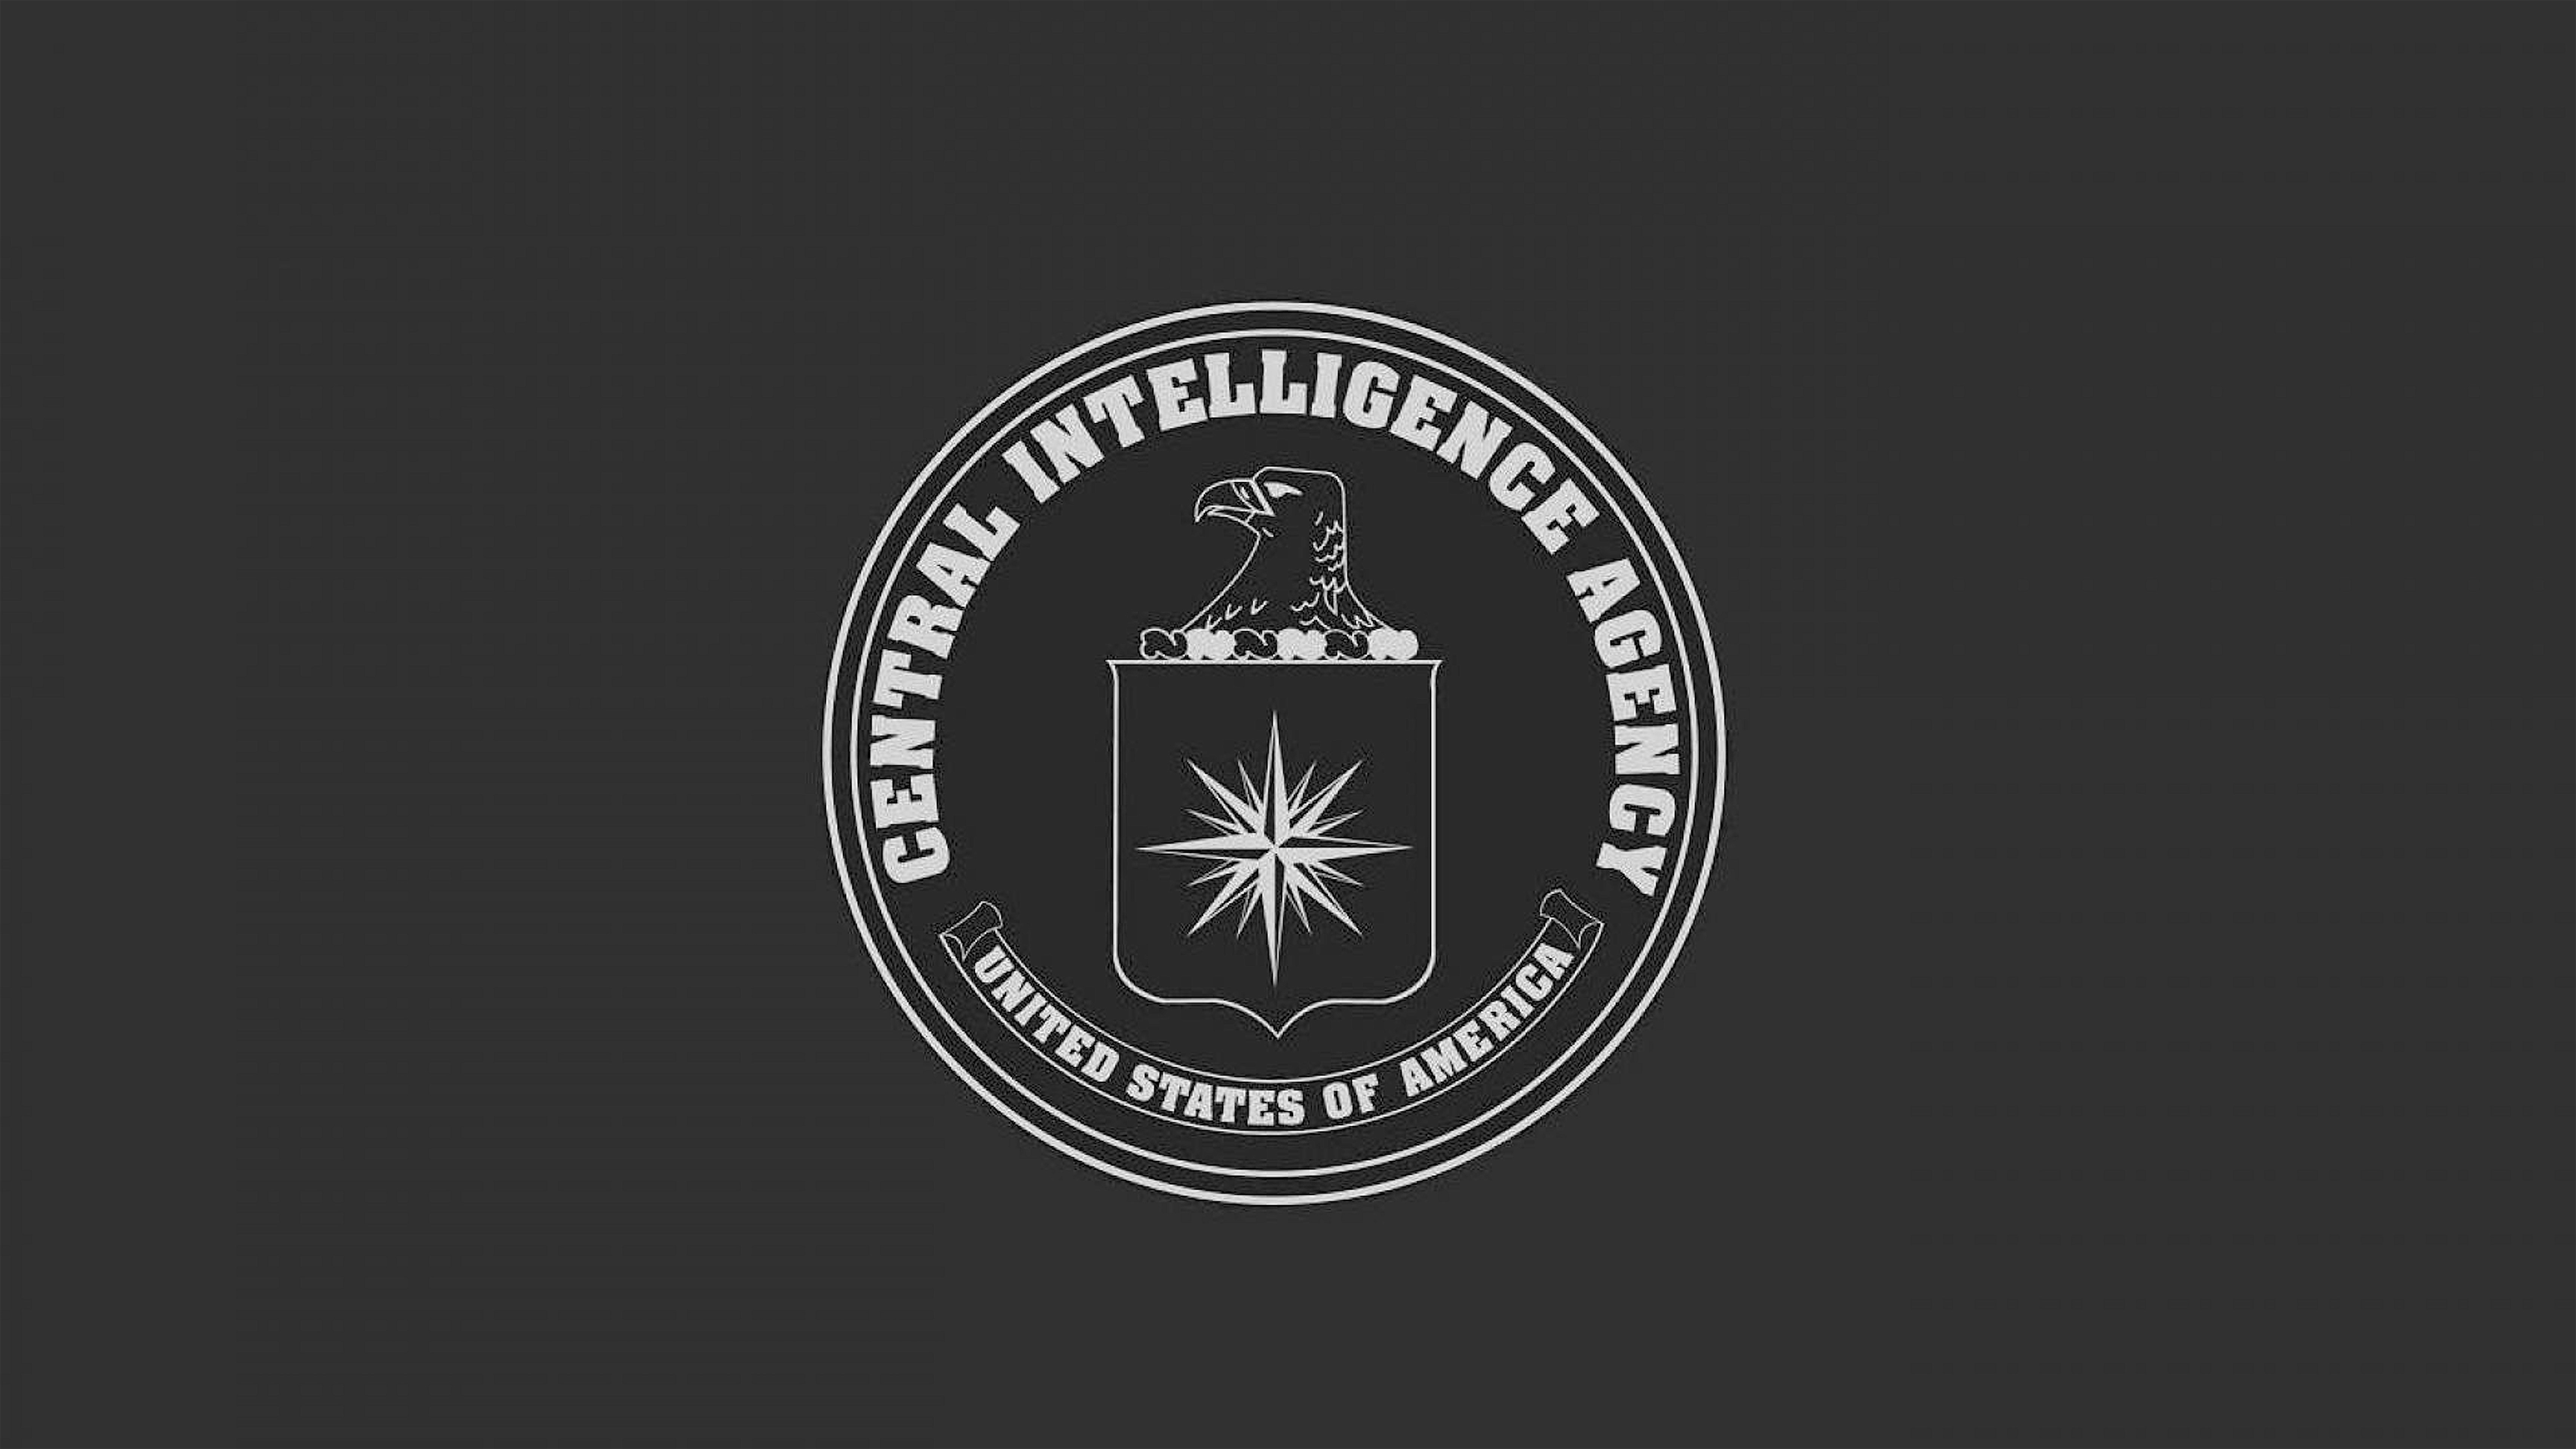 Central Intelligence Agency United States of America (foto thenewsrep.com)